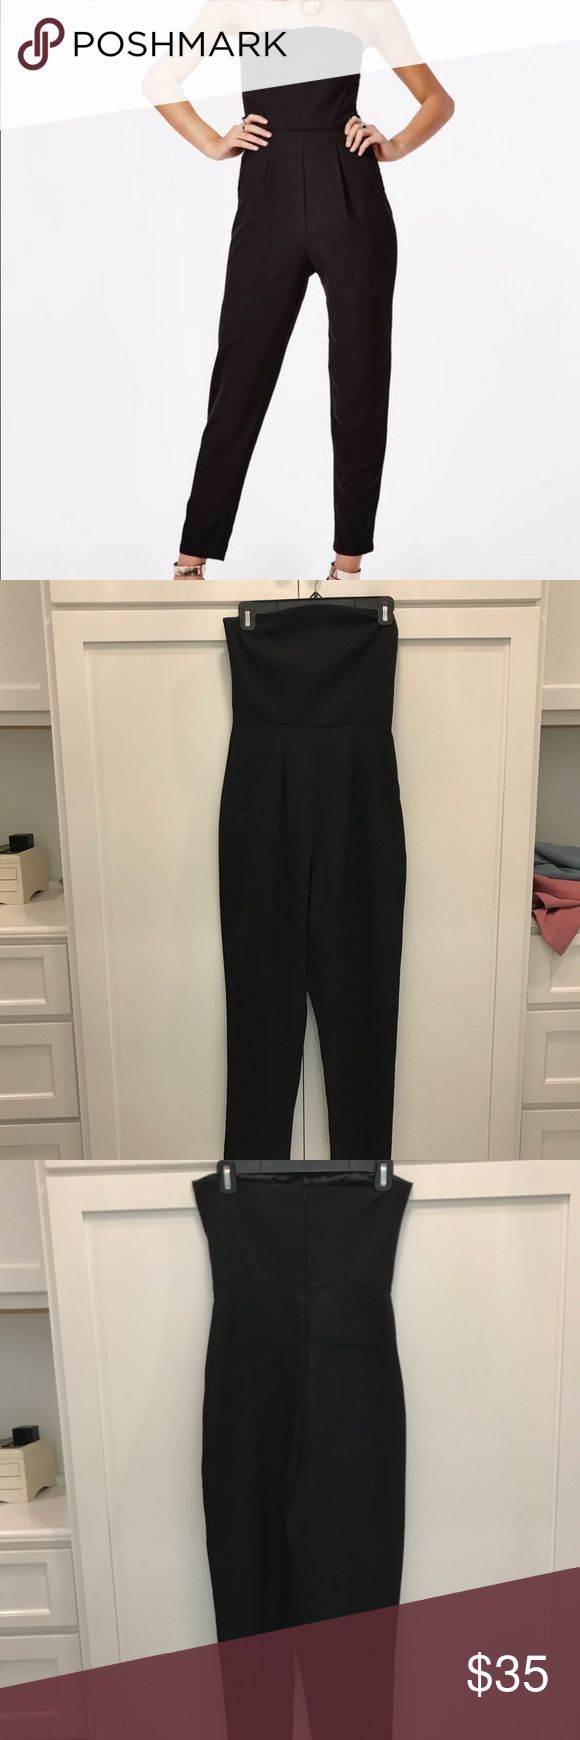 Missguided Black Strapless Jumpsuit Flattering black jumpsuit. Worn one time. Missguided Other